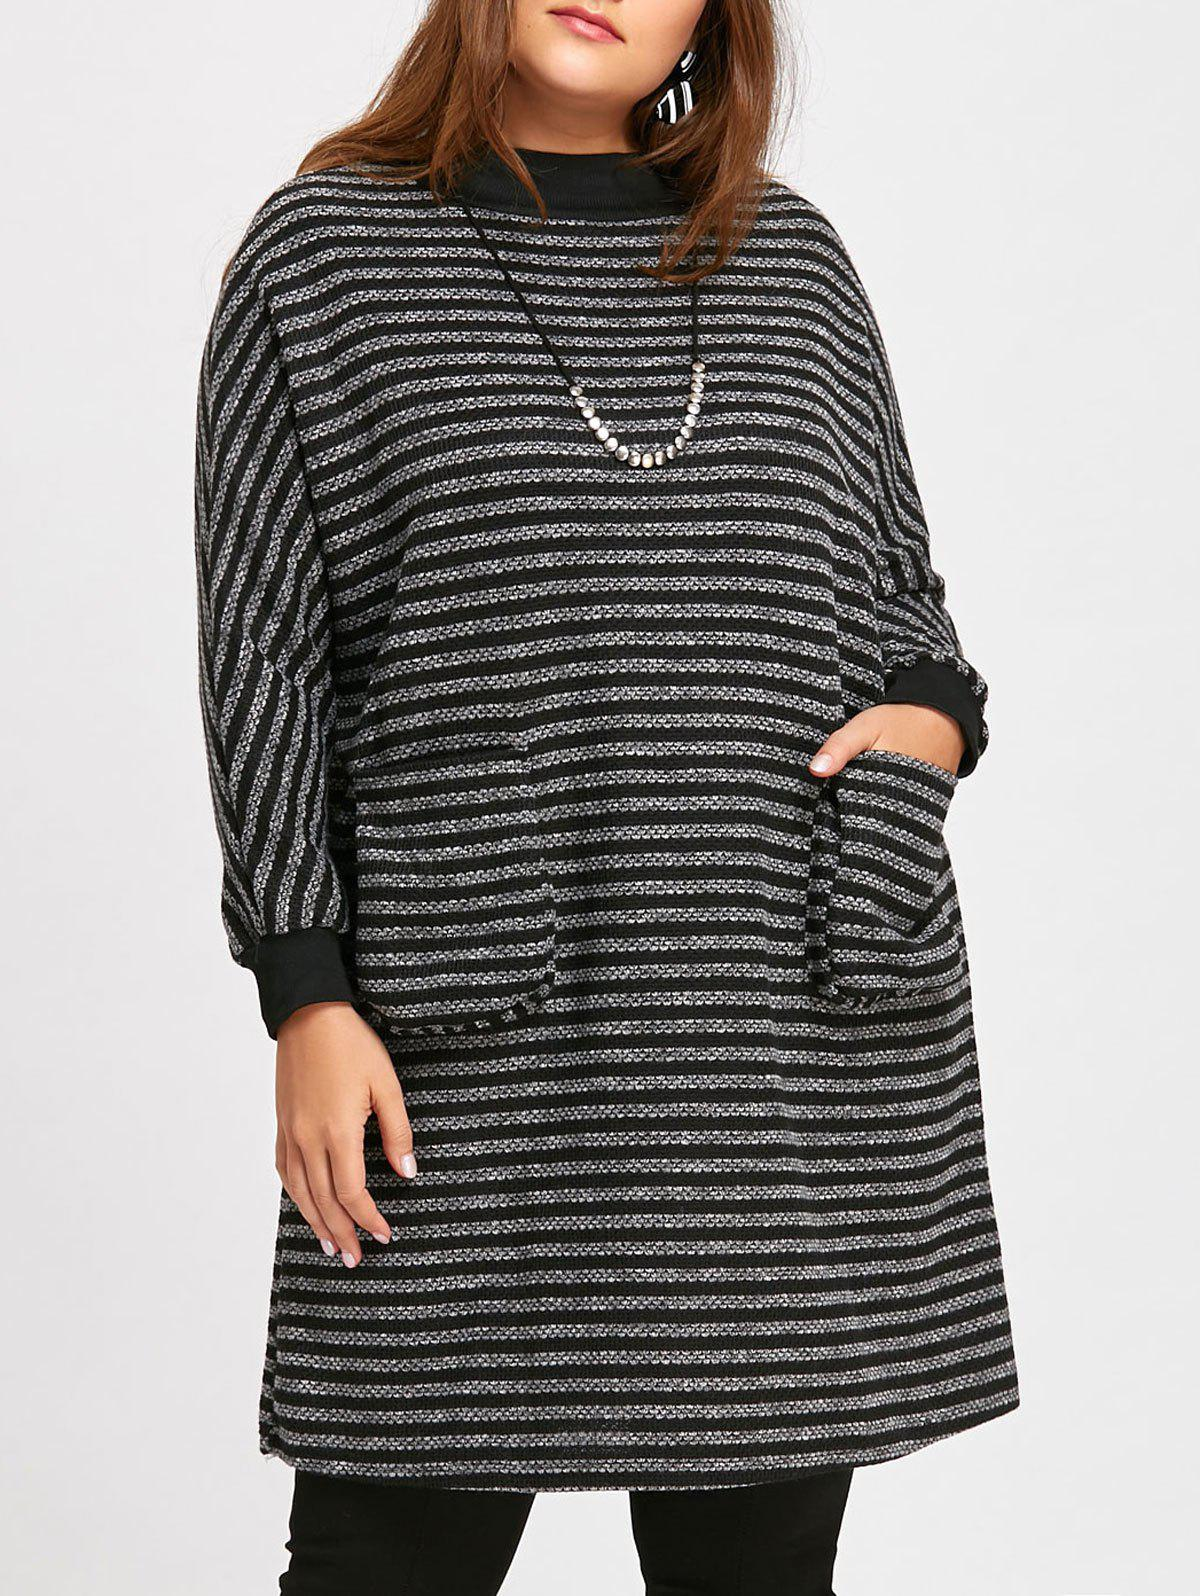 Plus Size Dolman Sleeve Dress